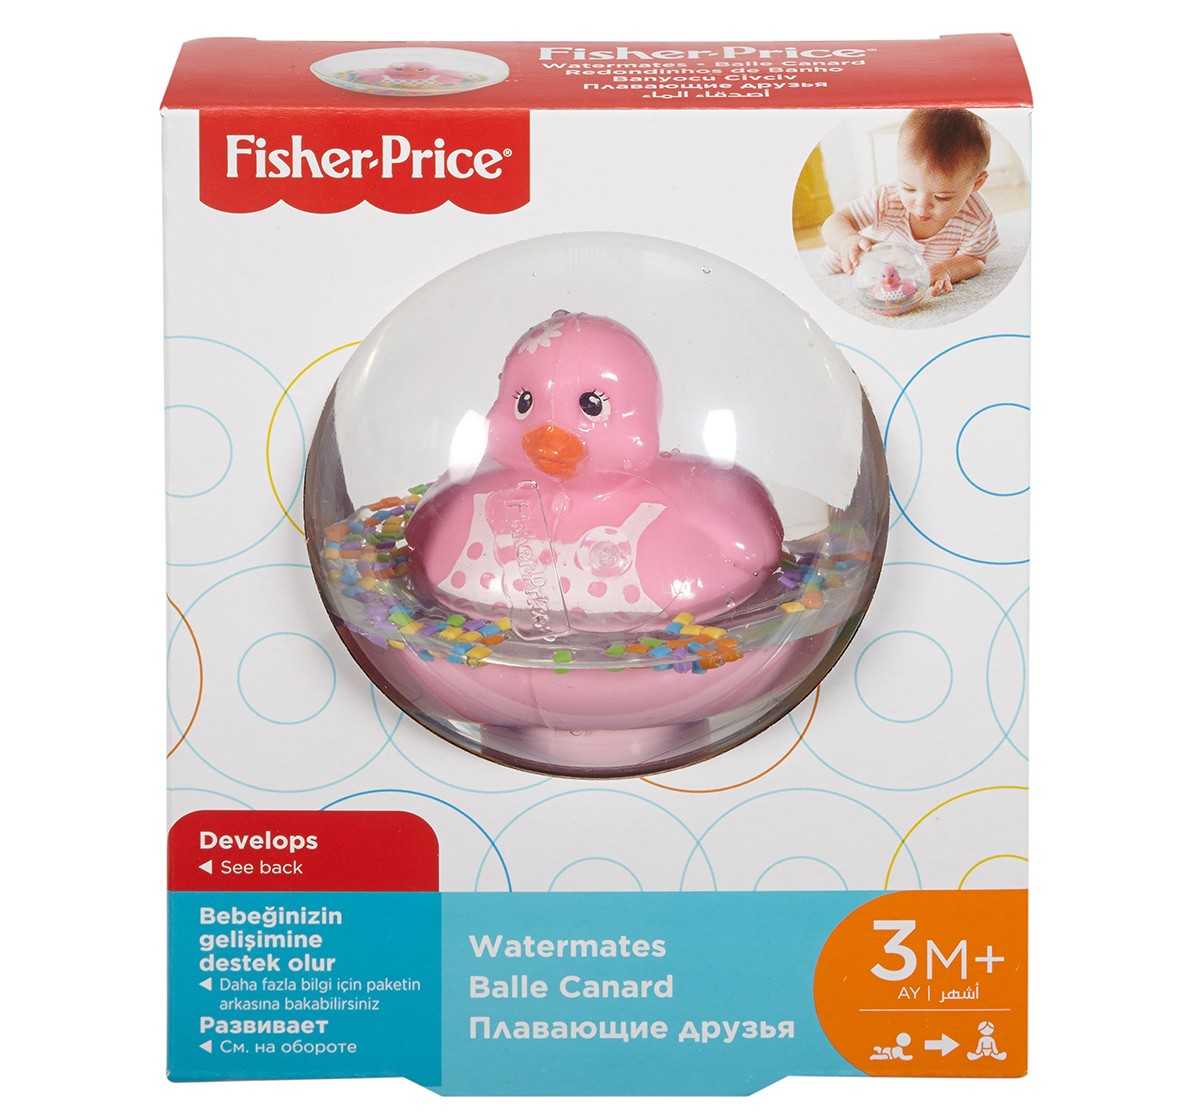 Fisher price Watermates Assortment Bath Toys & Accessories for Kids age 3M+